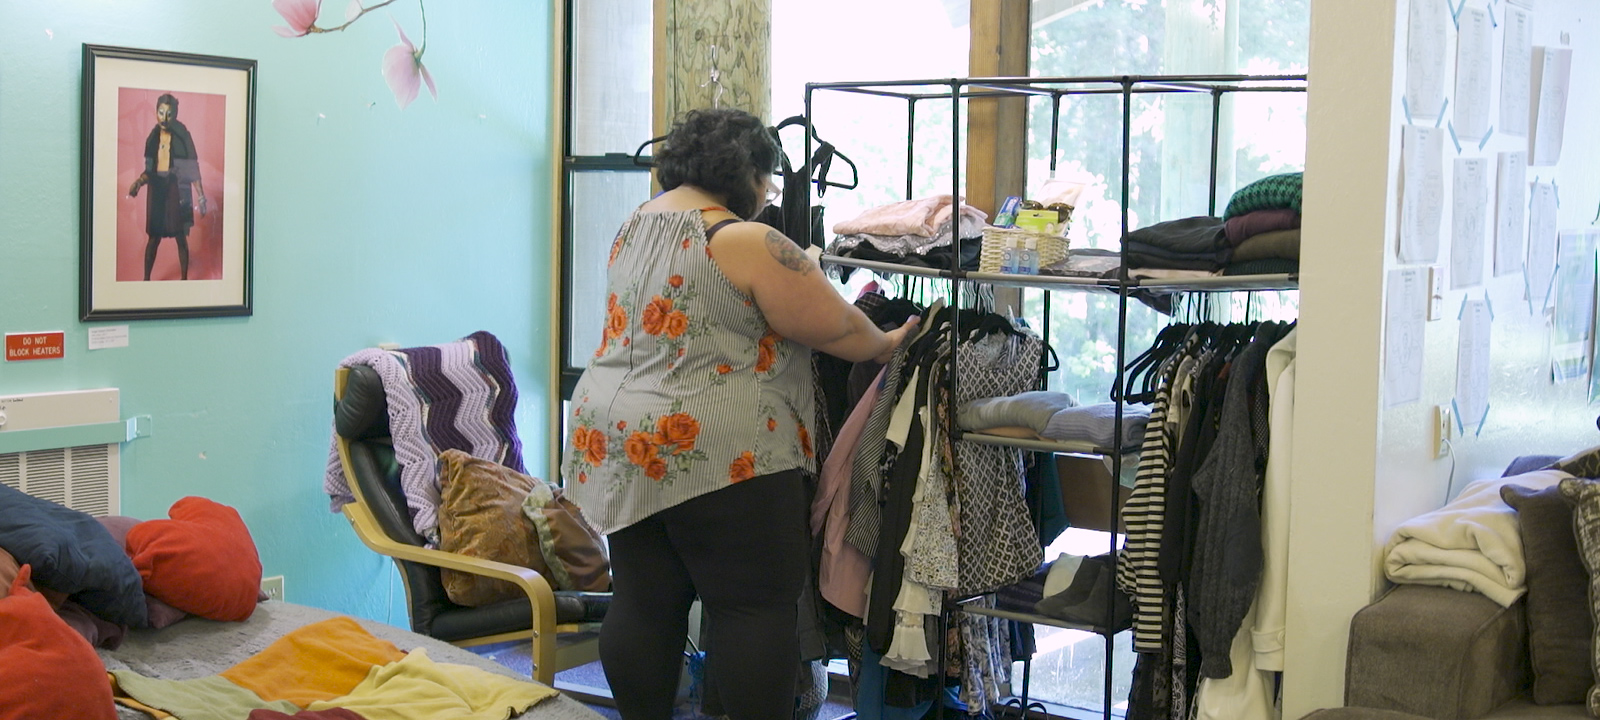 Trying on clothes at the Cantu Clothing Closet